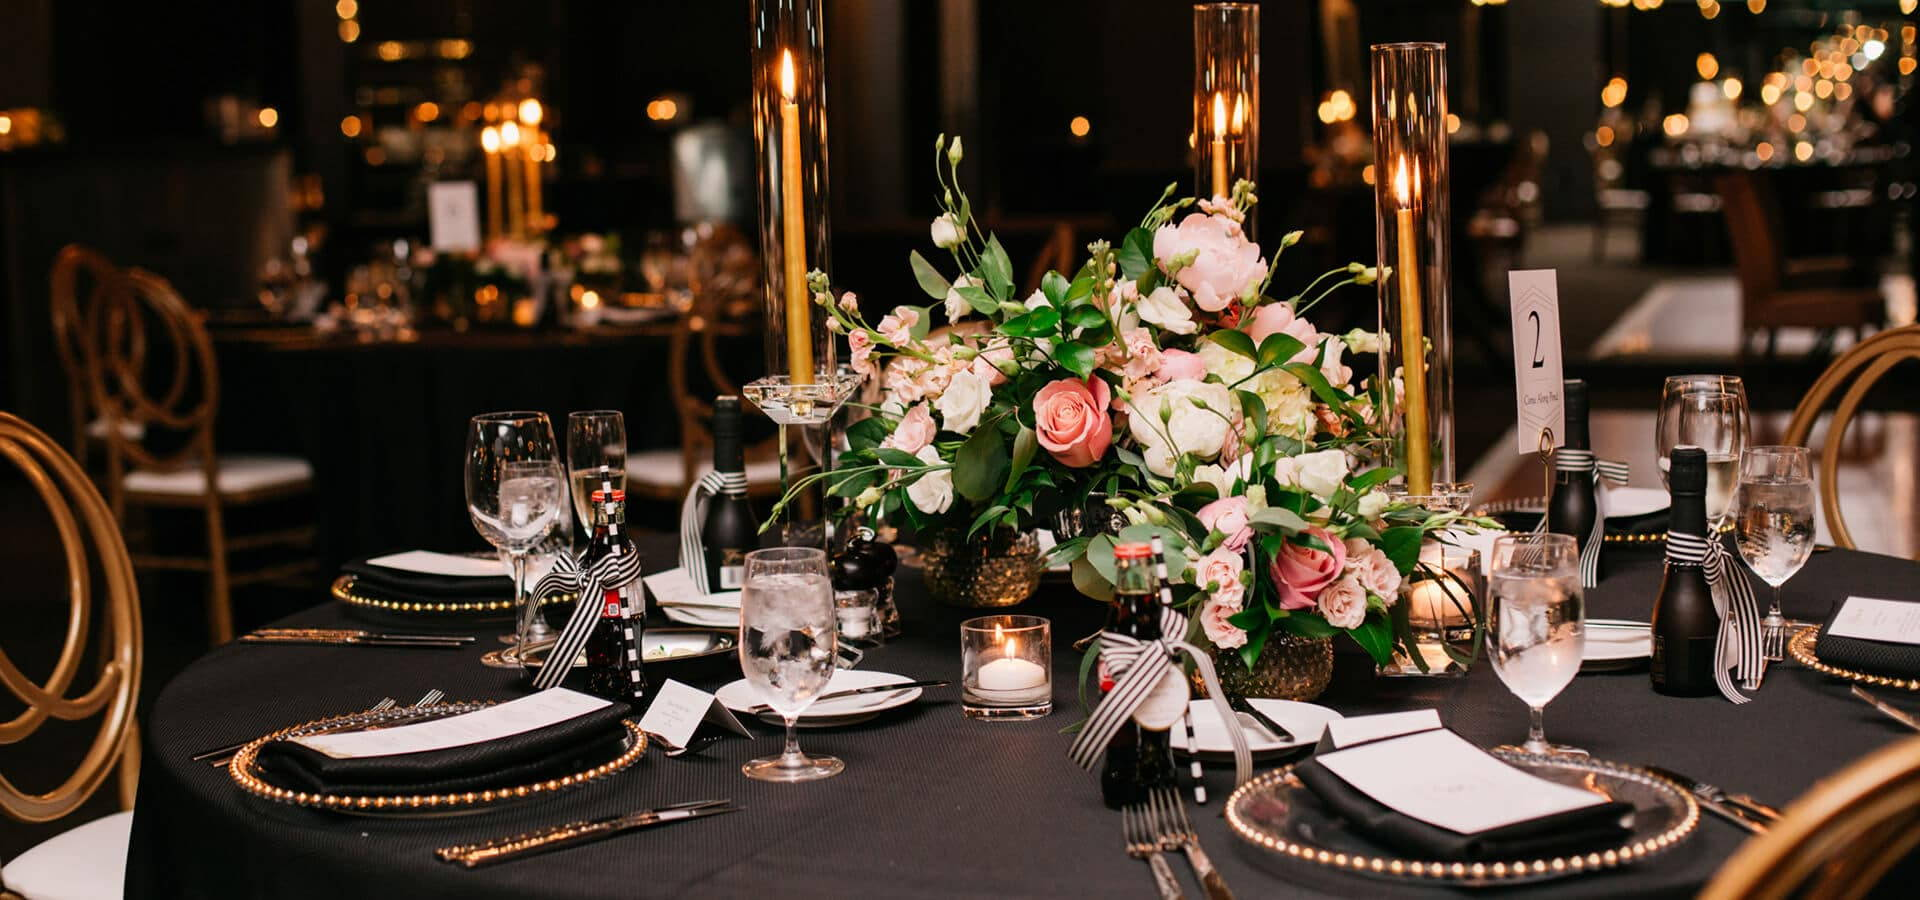 Hero image for Fiona and Andrew's Chic City Wedding at the Thompson Hotel